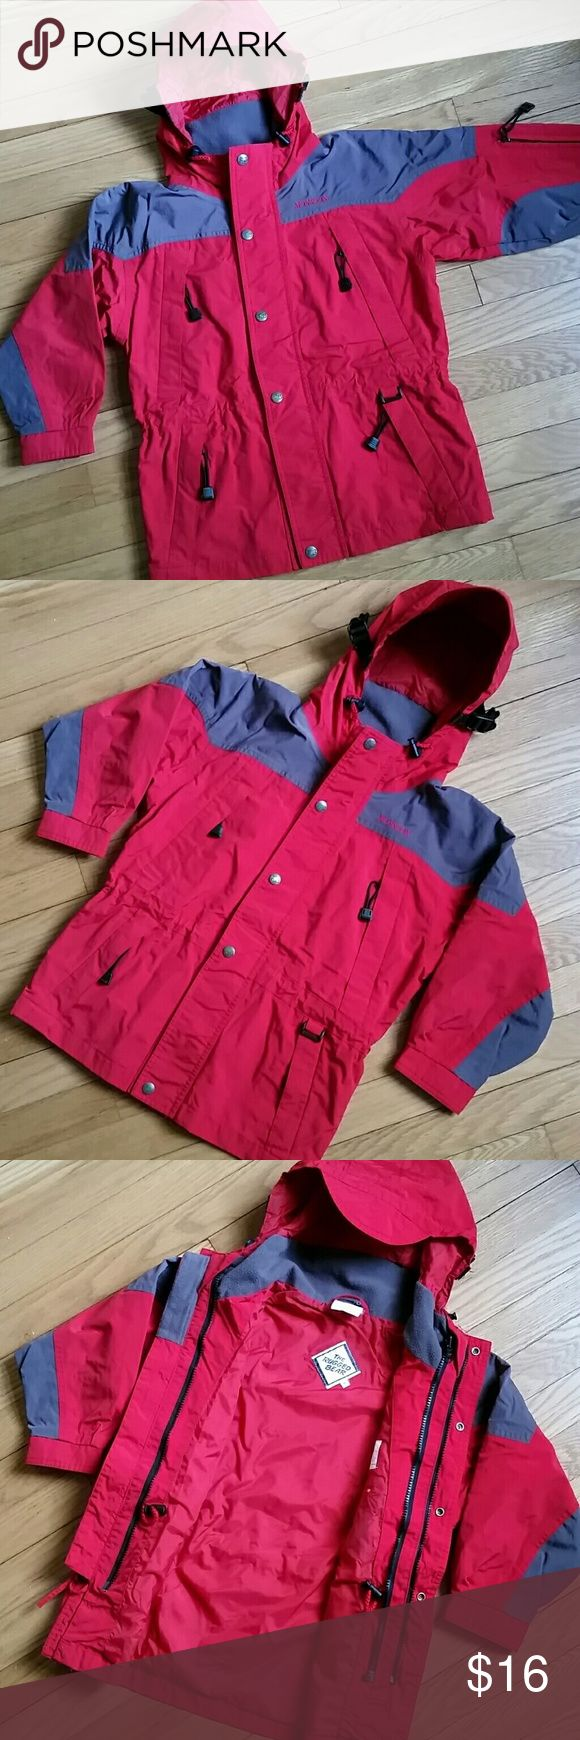 Size 6 Rugged Bear jacket Size 6 kids jacket. Made by Rugged Bear. Great quality! * In very good condition. No holes or marks. All zippers and velcro closures in good working order.  * Red with dark gray accents. * 100% nylon. Fully lined. Velcro at wrist. 4 pockets in front, and 1 on right sleeve. Hood has a brim on it to keep your child's face dry. * 17 in wide, armpit to armpit, when closed. Approx 22 inches long, from top to bottom of jacket.  ** Price is firm unless bundled. See my…